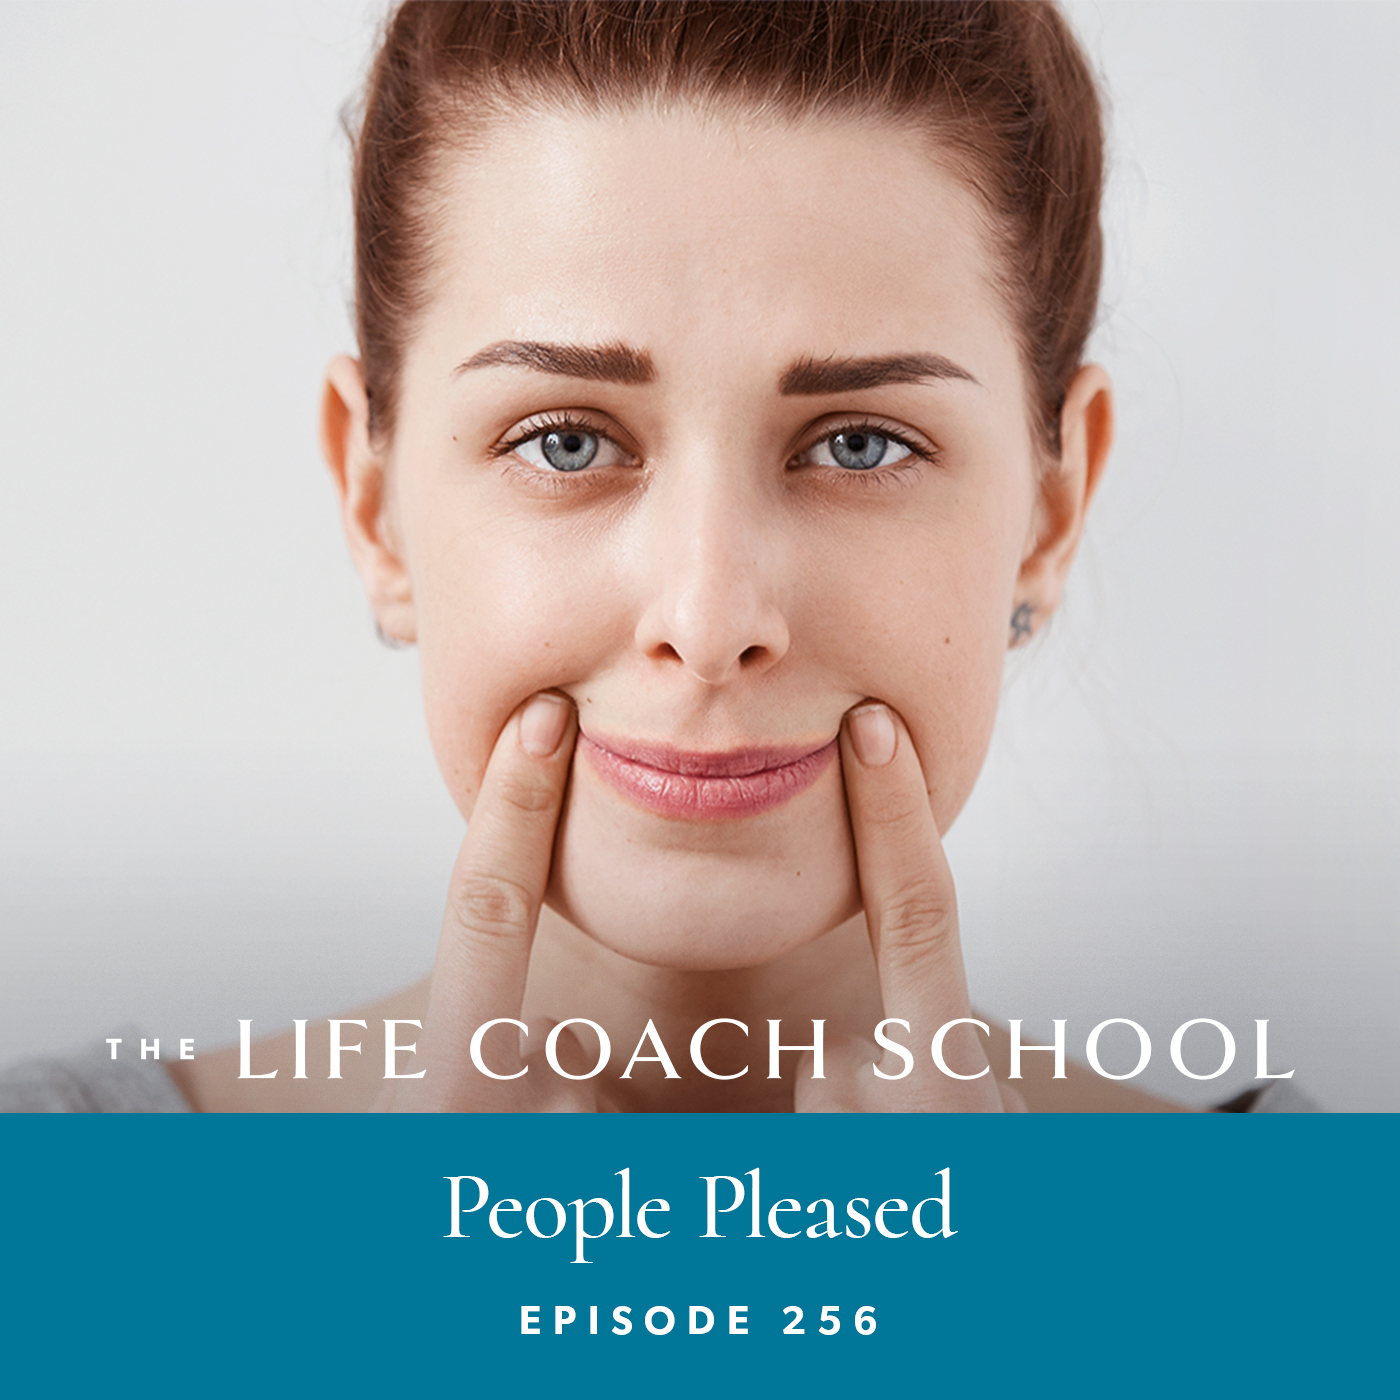 The Life Coach School Podcast with Brooke Castillo | Episode 256 | People Pleased